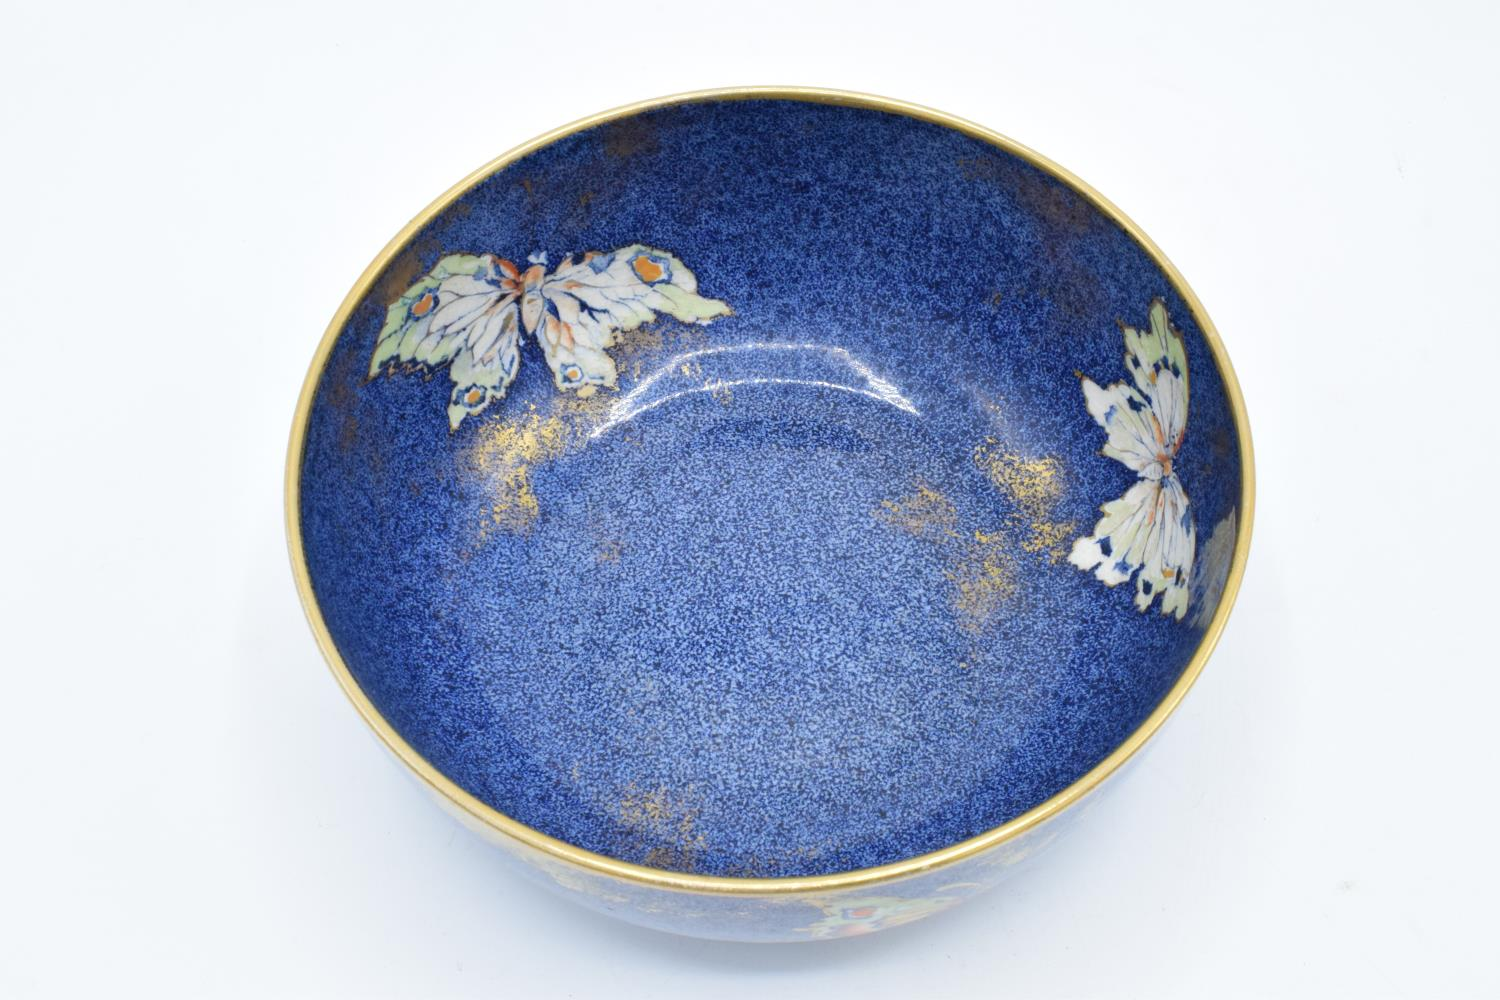 Rialto Ware pottery bowl with butterflies decoration. In good condition with no obvious damage or - Image 4 of 6